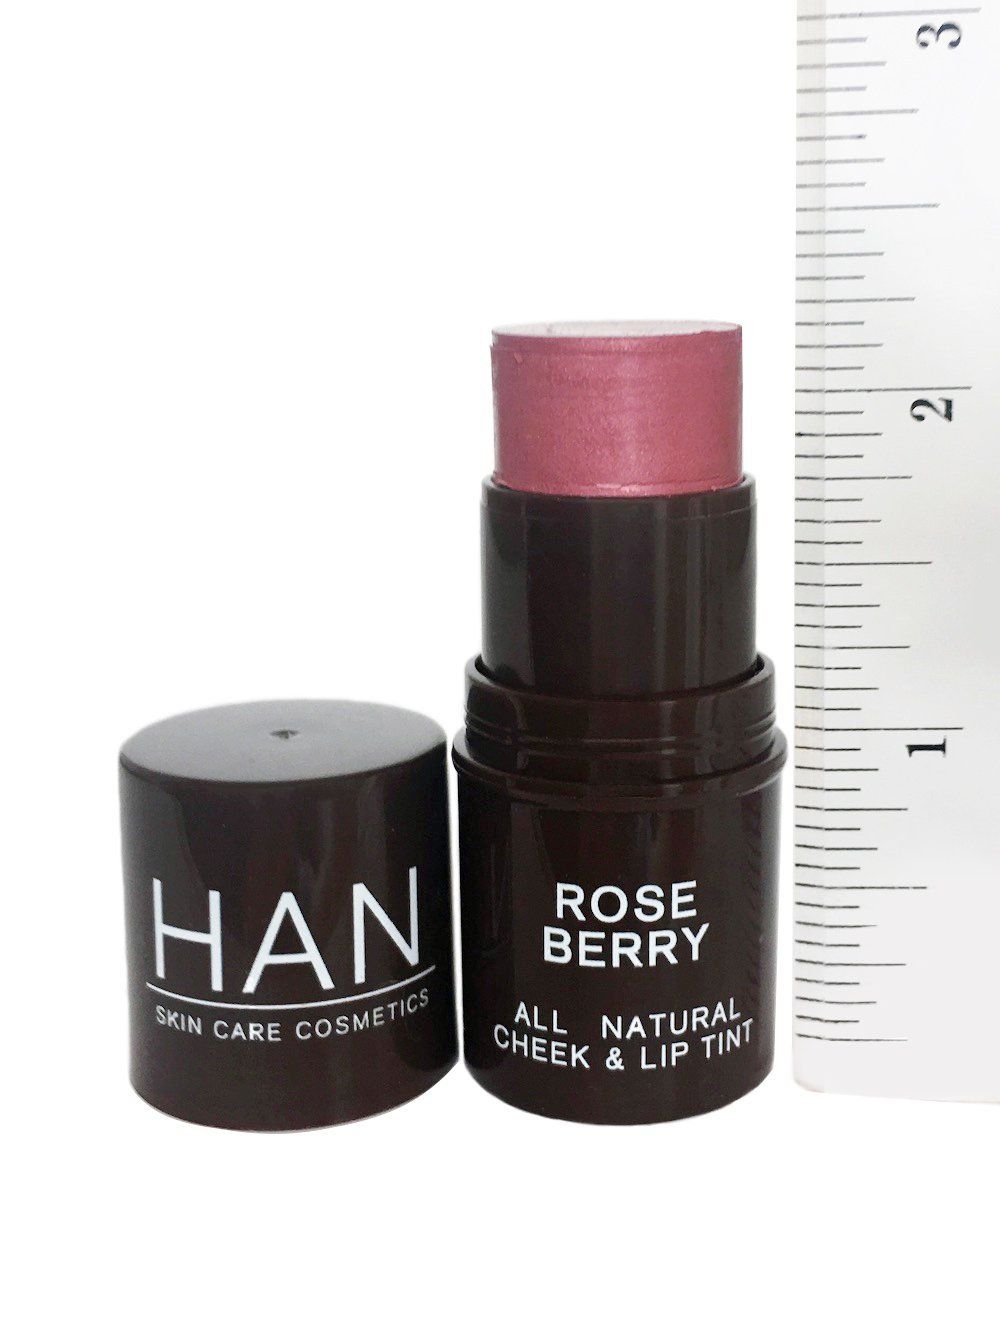 Han Skin Care Cosmetics Natural Cheek And Lip Tint Rose Berry Read More At The Image Link This Is An Affiliate Natural Lip Tints Lip Tint Too Faced Bronzer